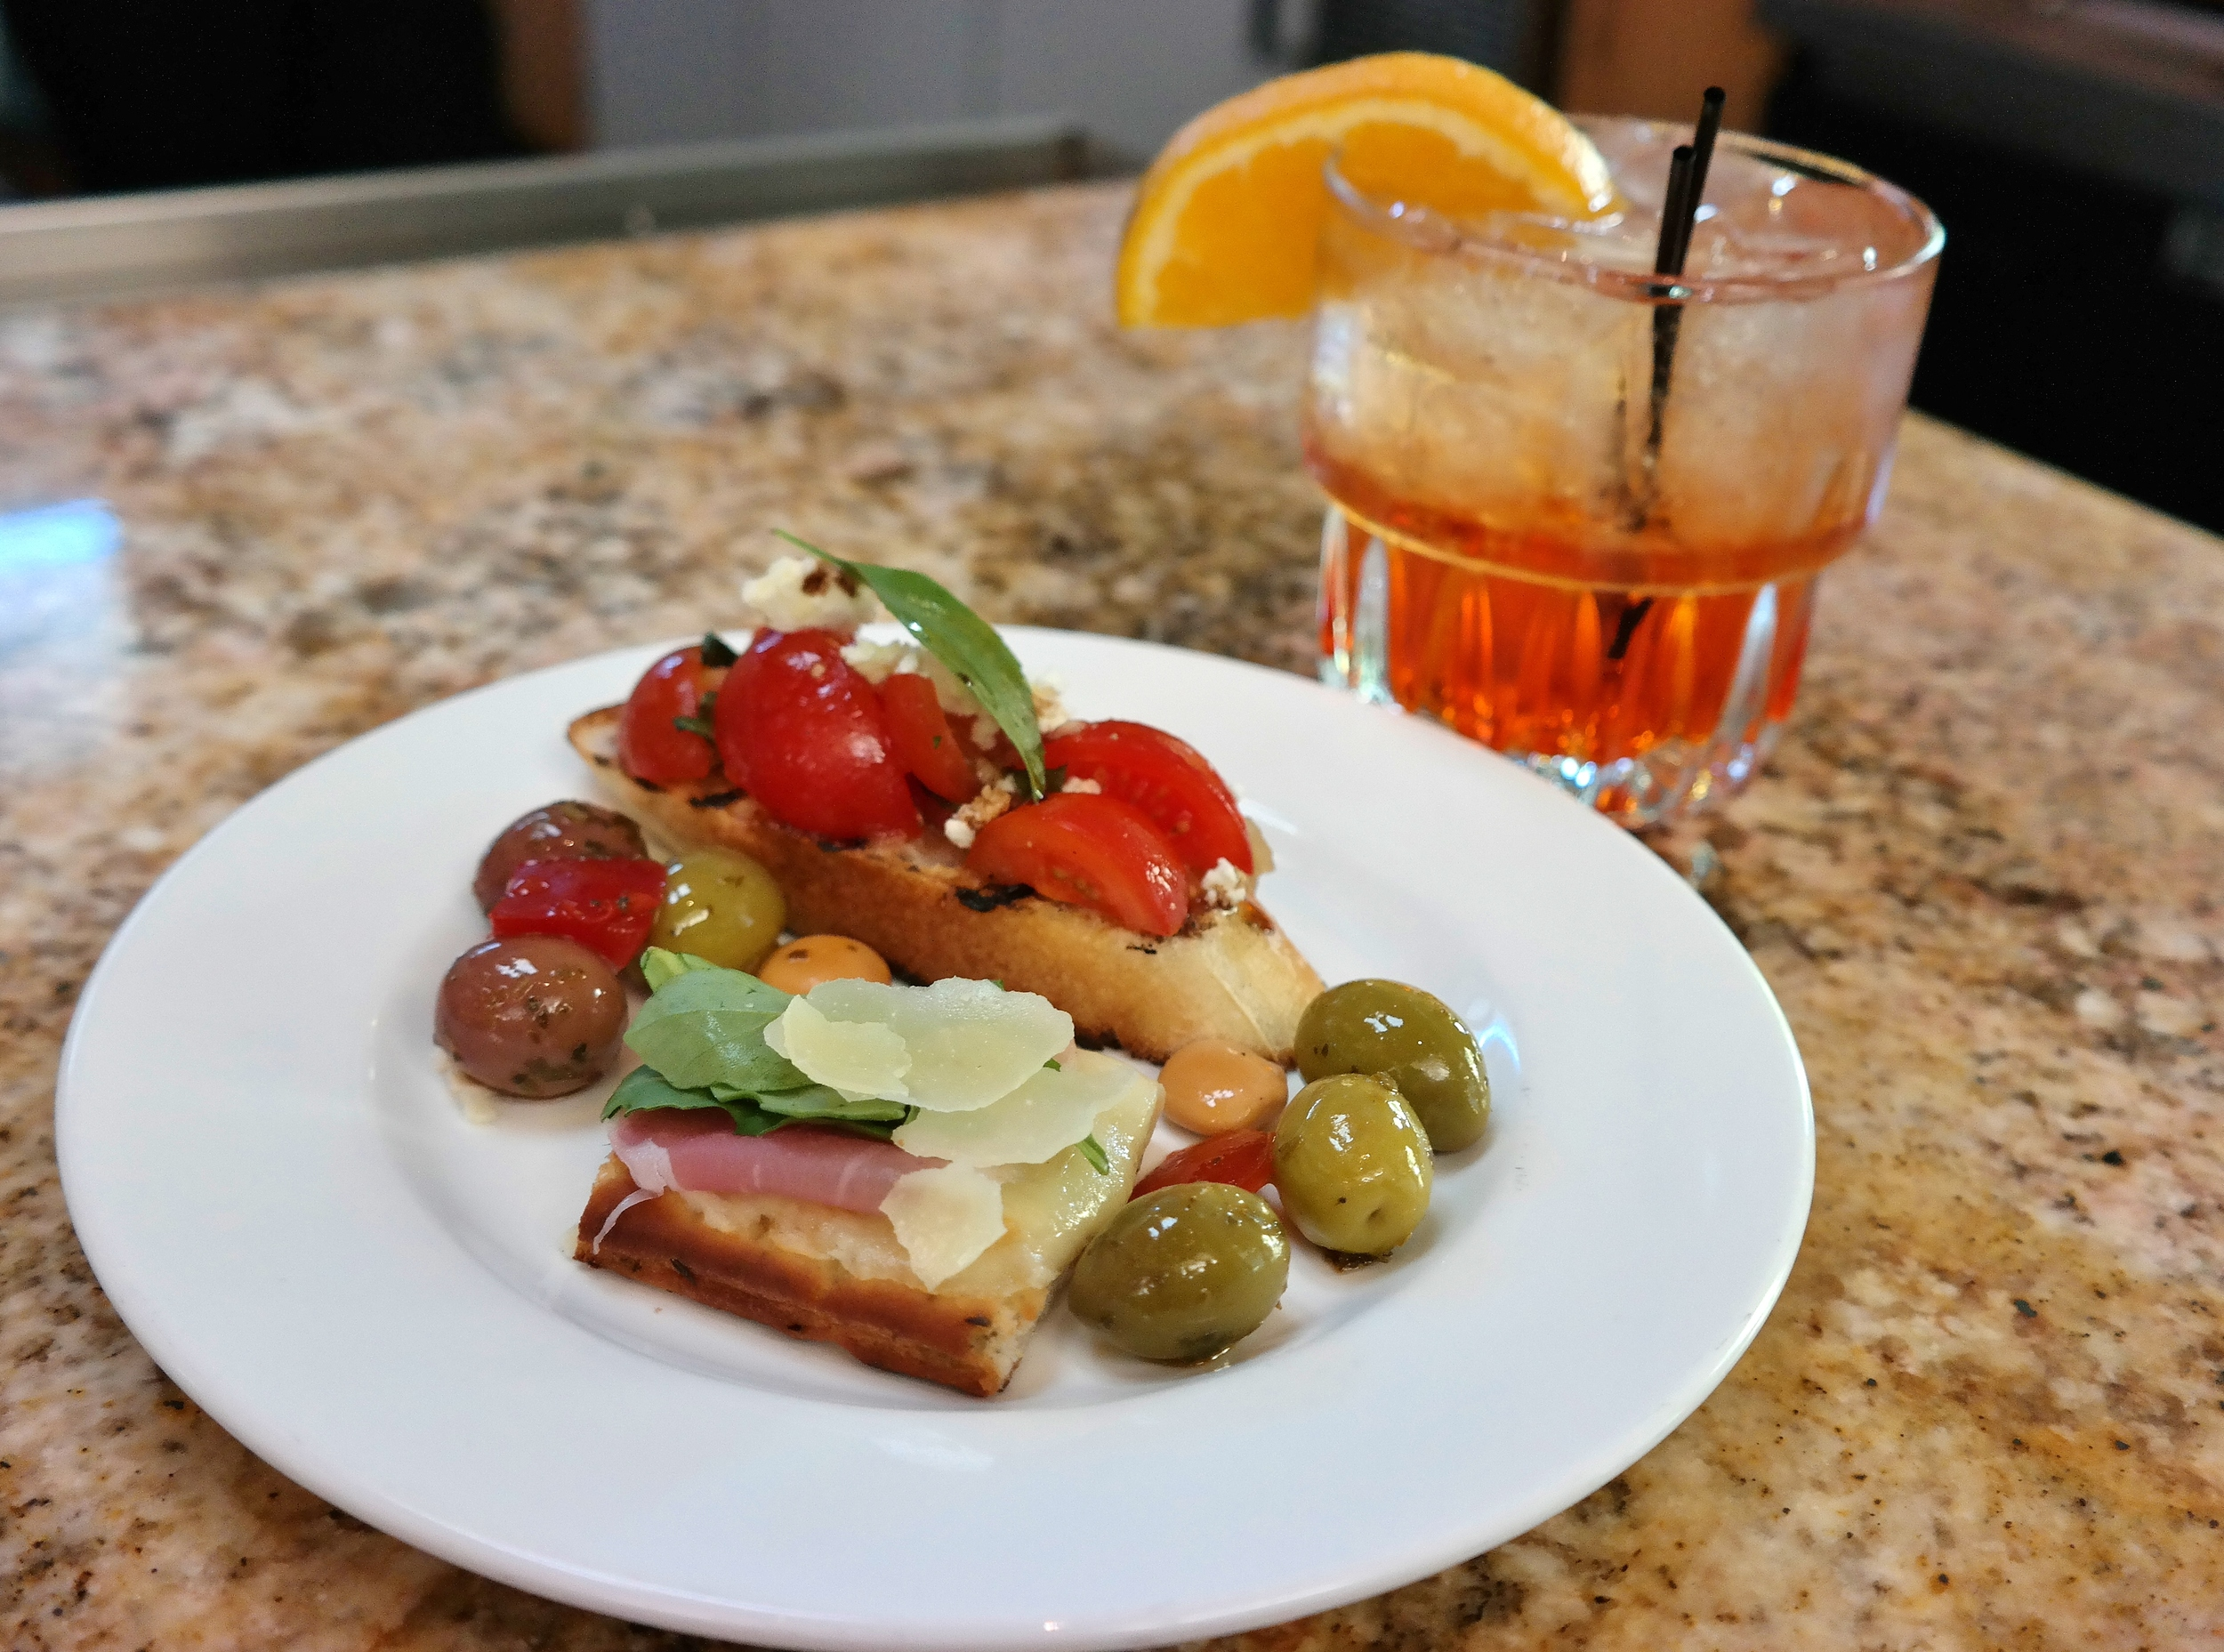 New-Groni (Bulldog Gin, vermouth bianco, infused Aperol, and orange bitters) with a complimentary snack plate.